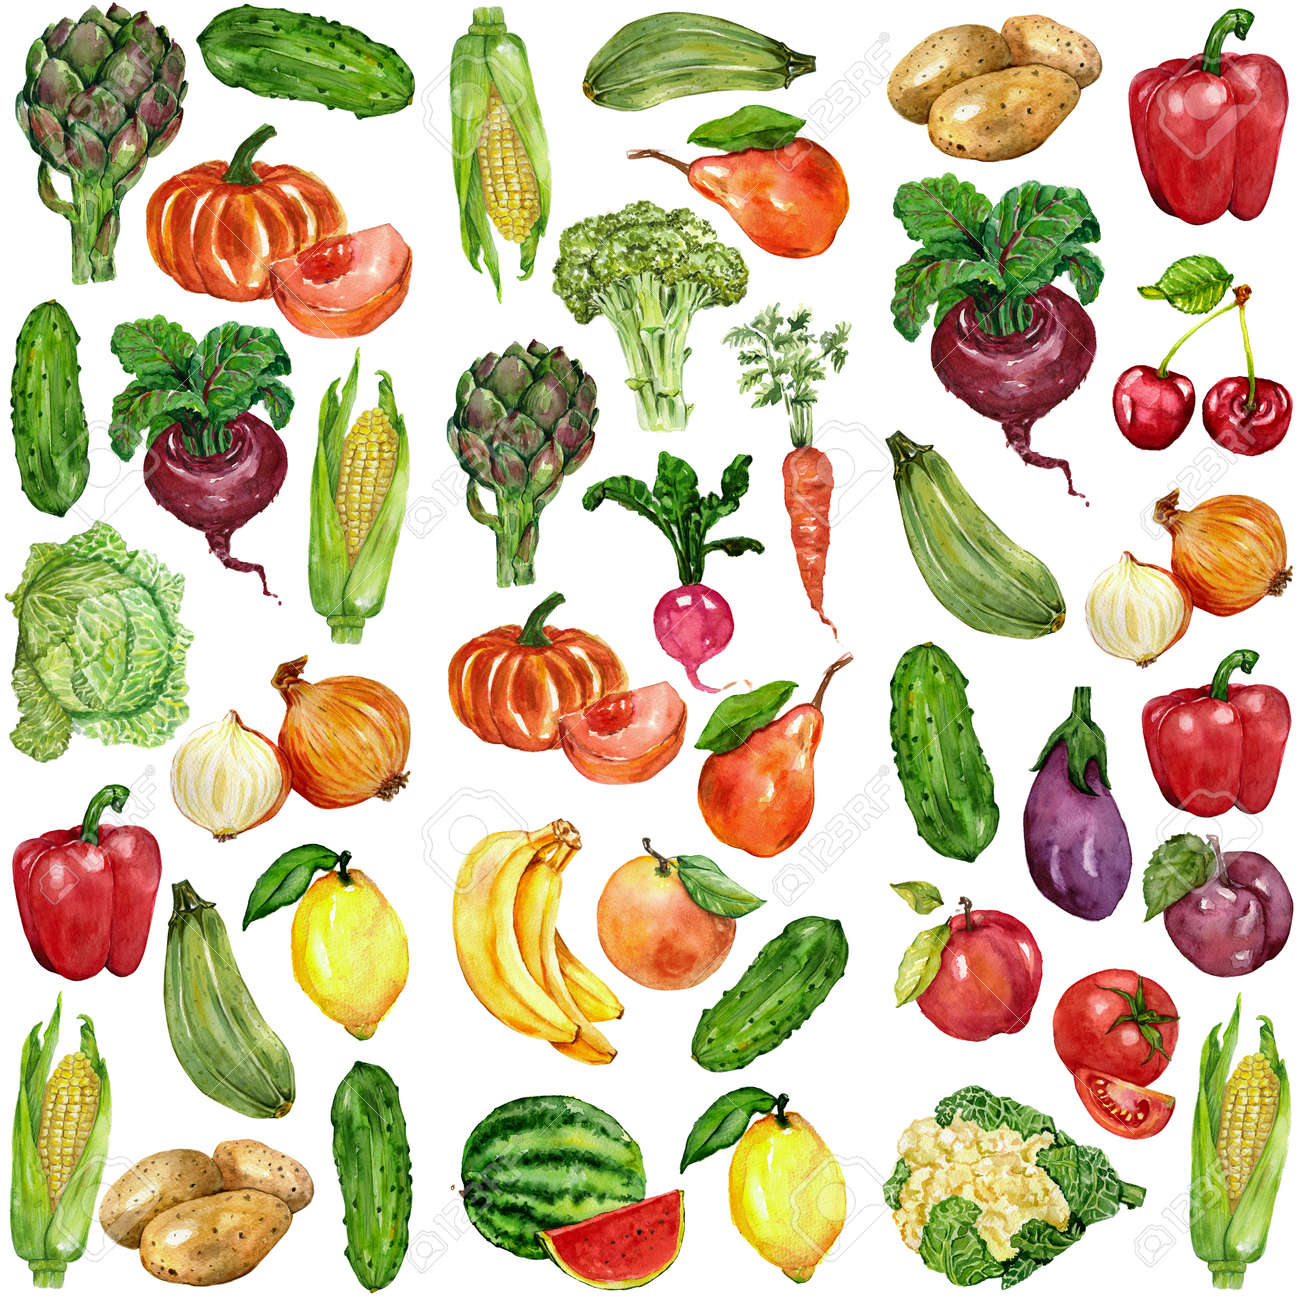 Watercolor set with fruits and vegetables Hand drawn image - 60347553